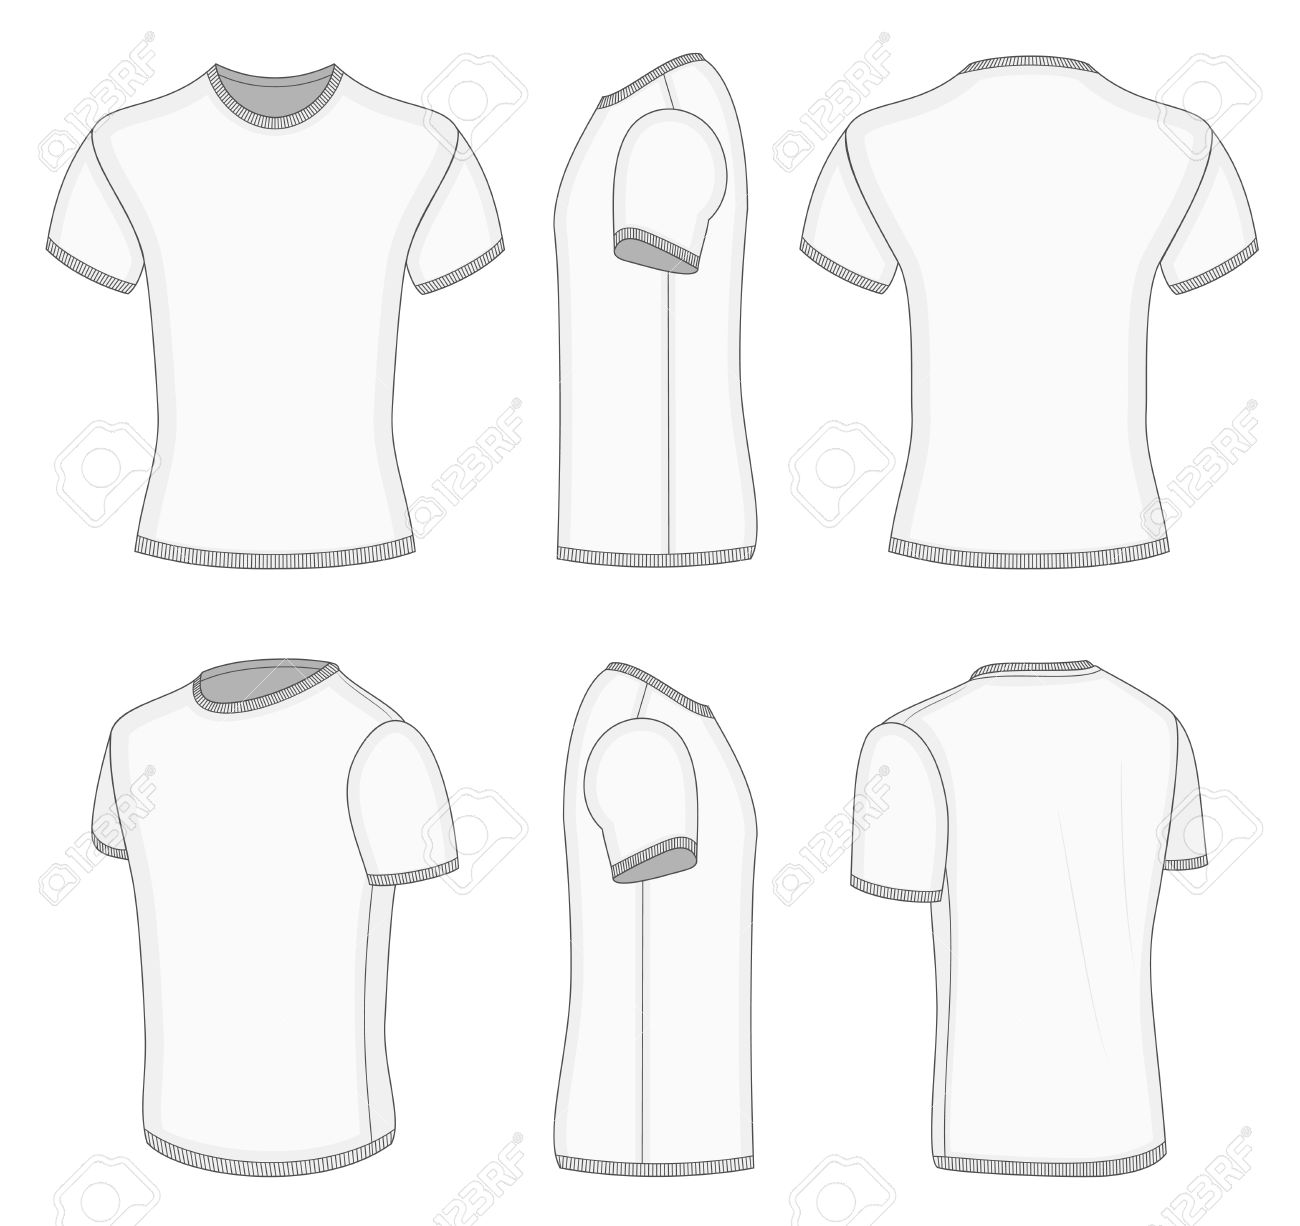 All Six Views Men S White Short Sleeve T Shirt Design Templates Royalty Free Cliparts Vectors And Stock Illustration Image 27523523